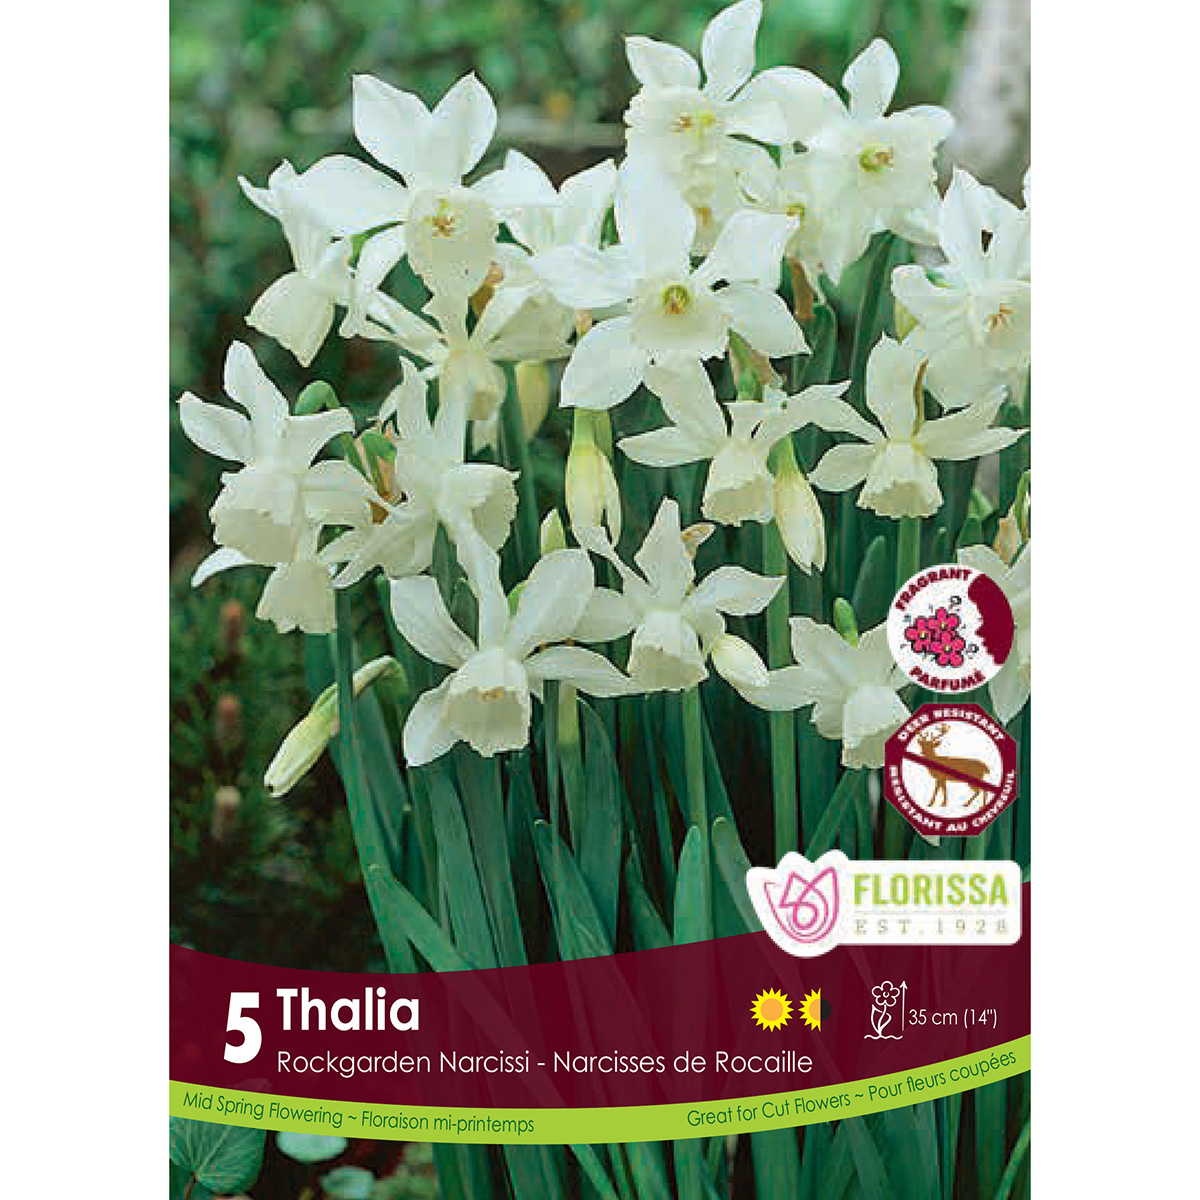 Narcissus 'Thalia' Bulbs